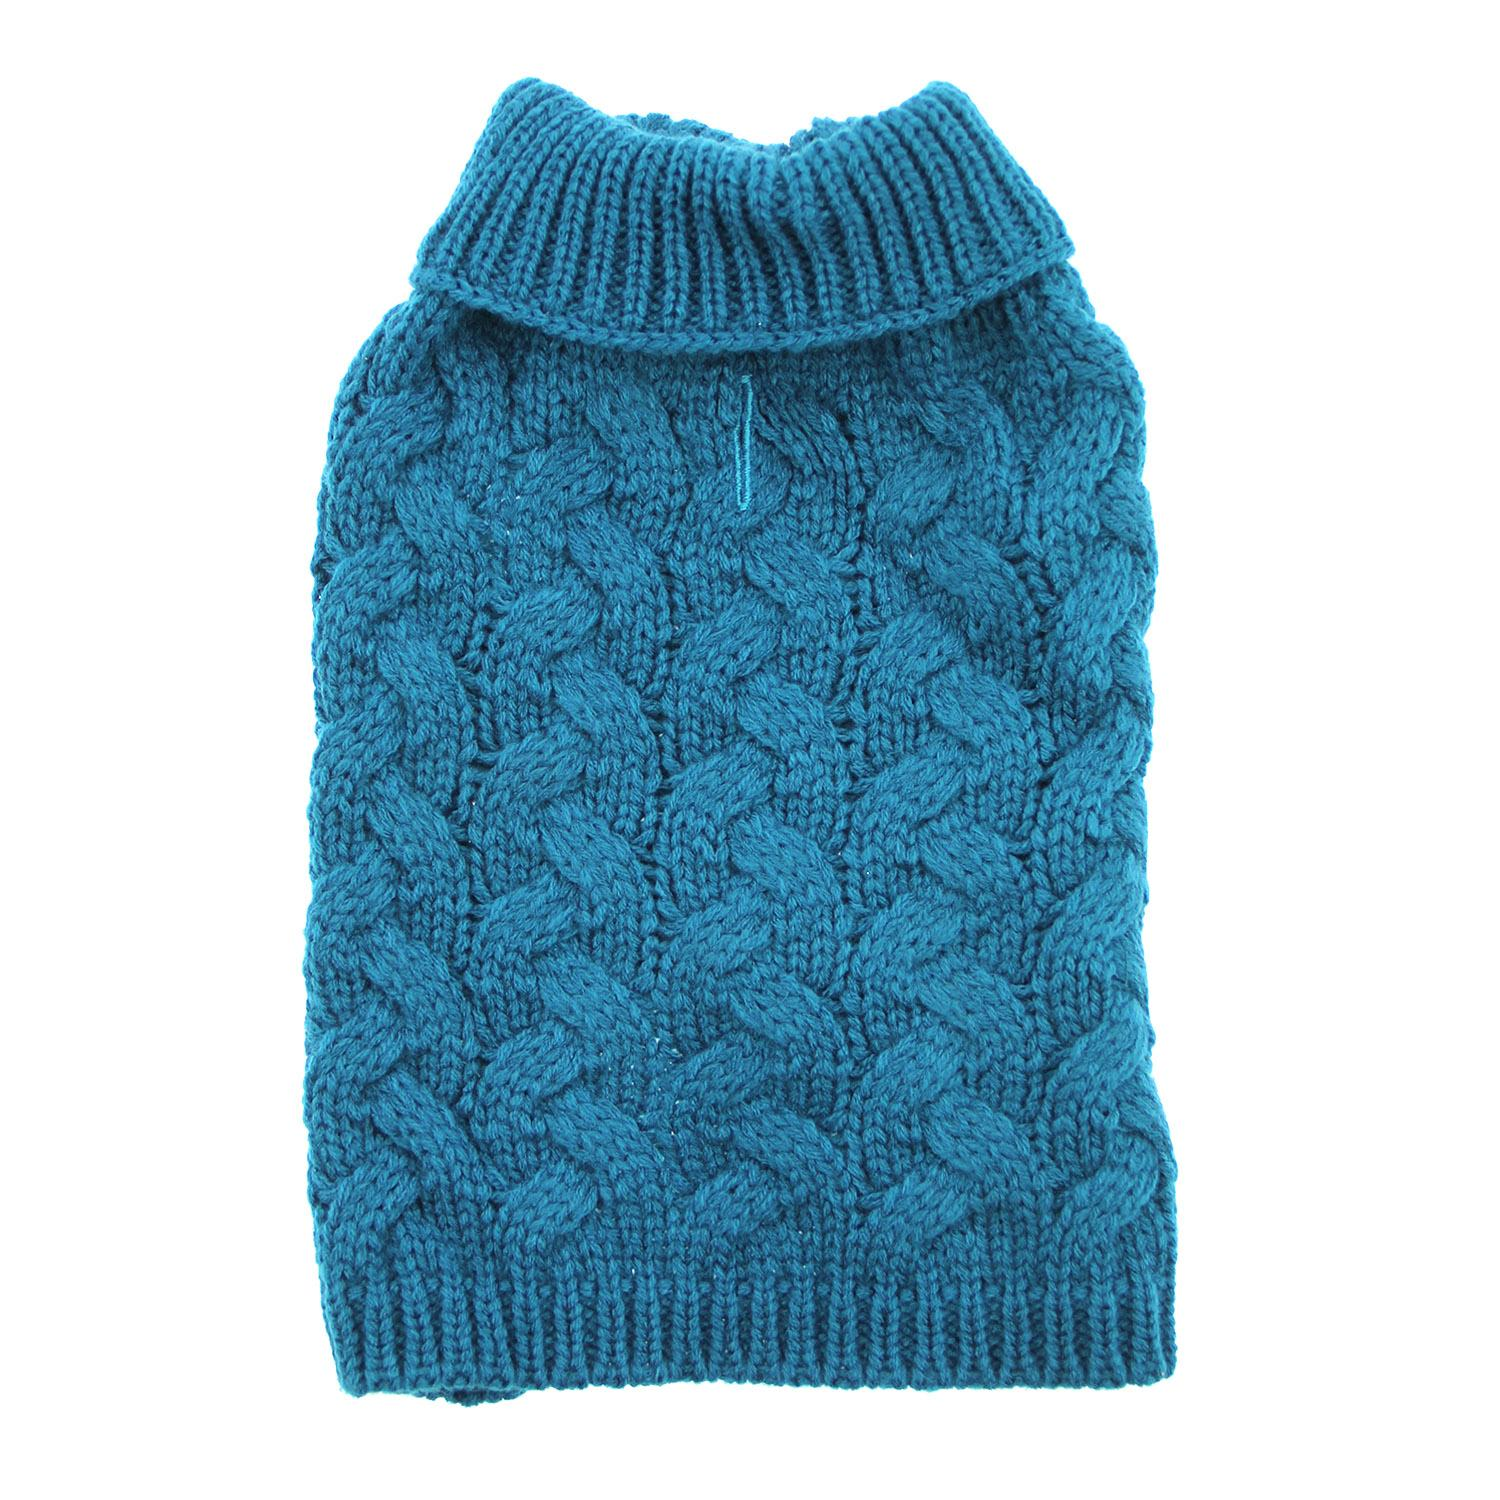 Zack and Zoey Elements Chunky Cable-Knit Dog Sweater - Teal Blue ...